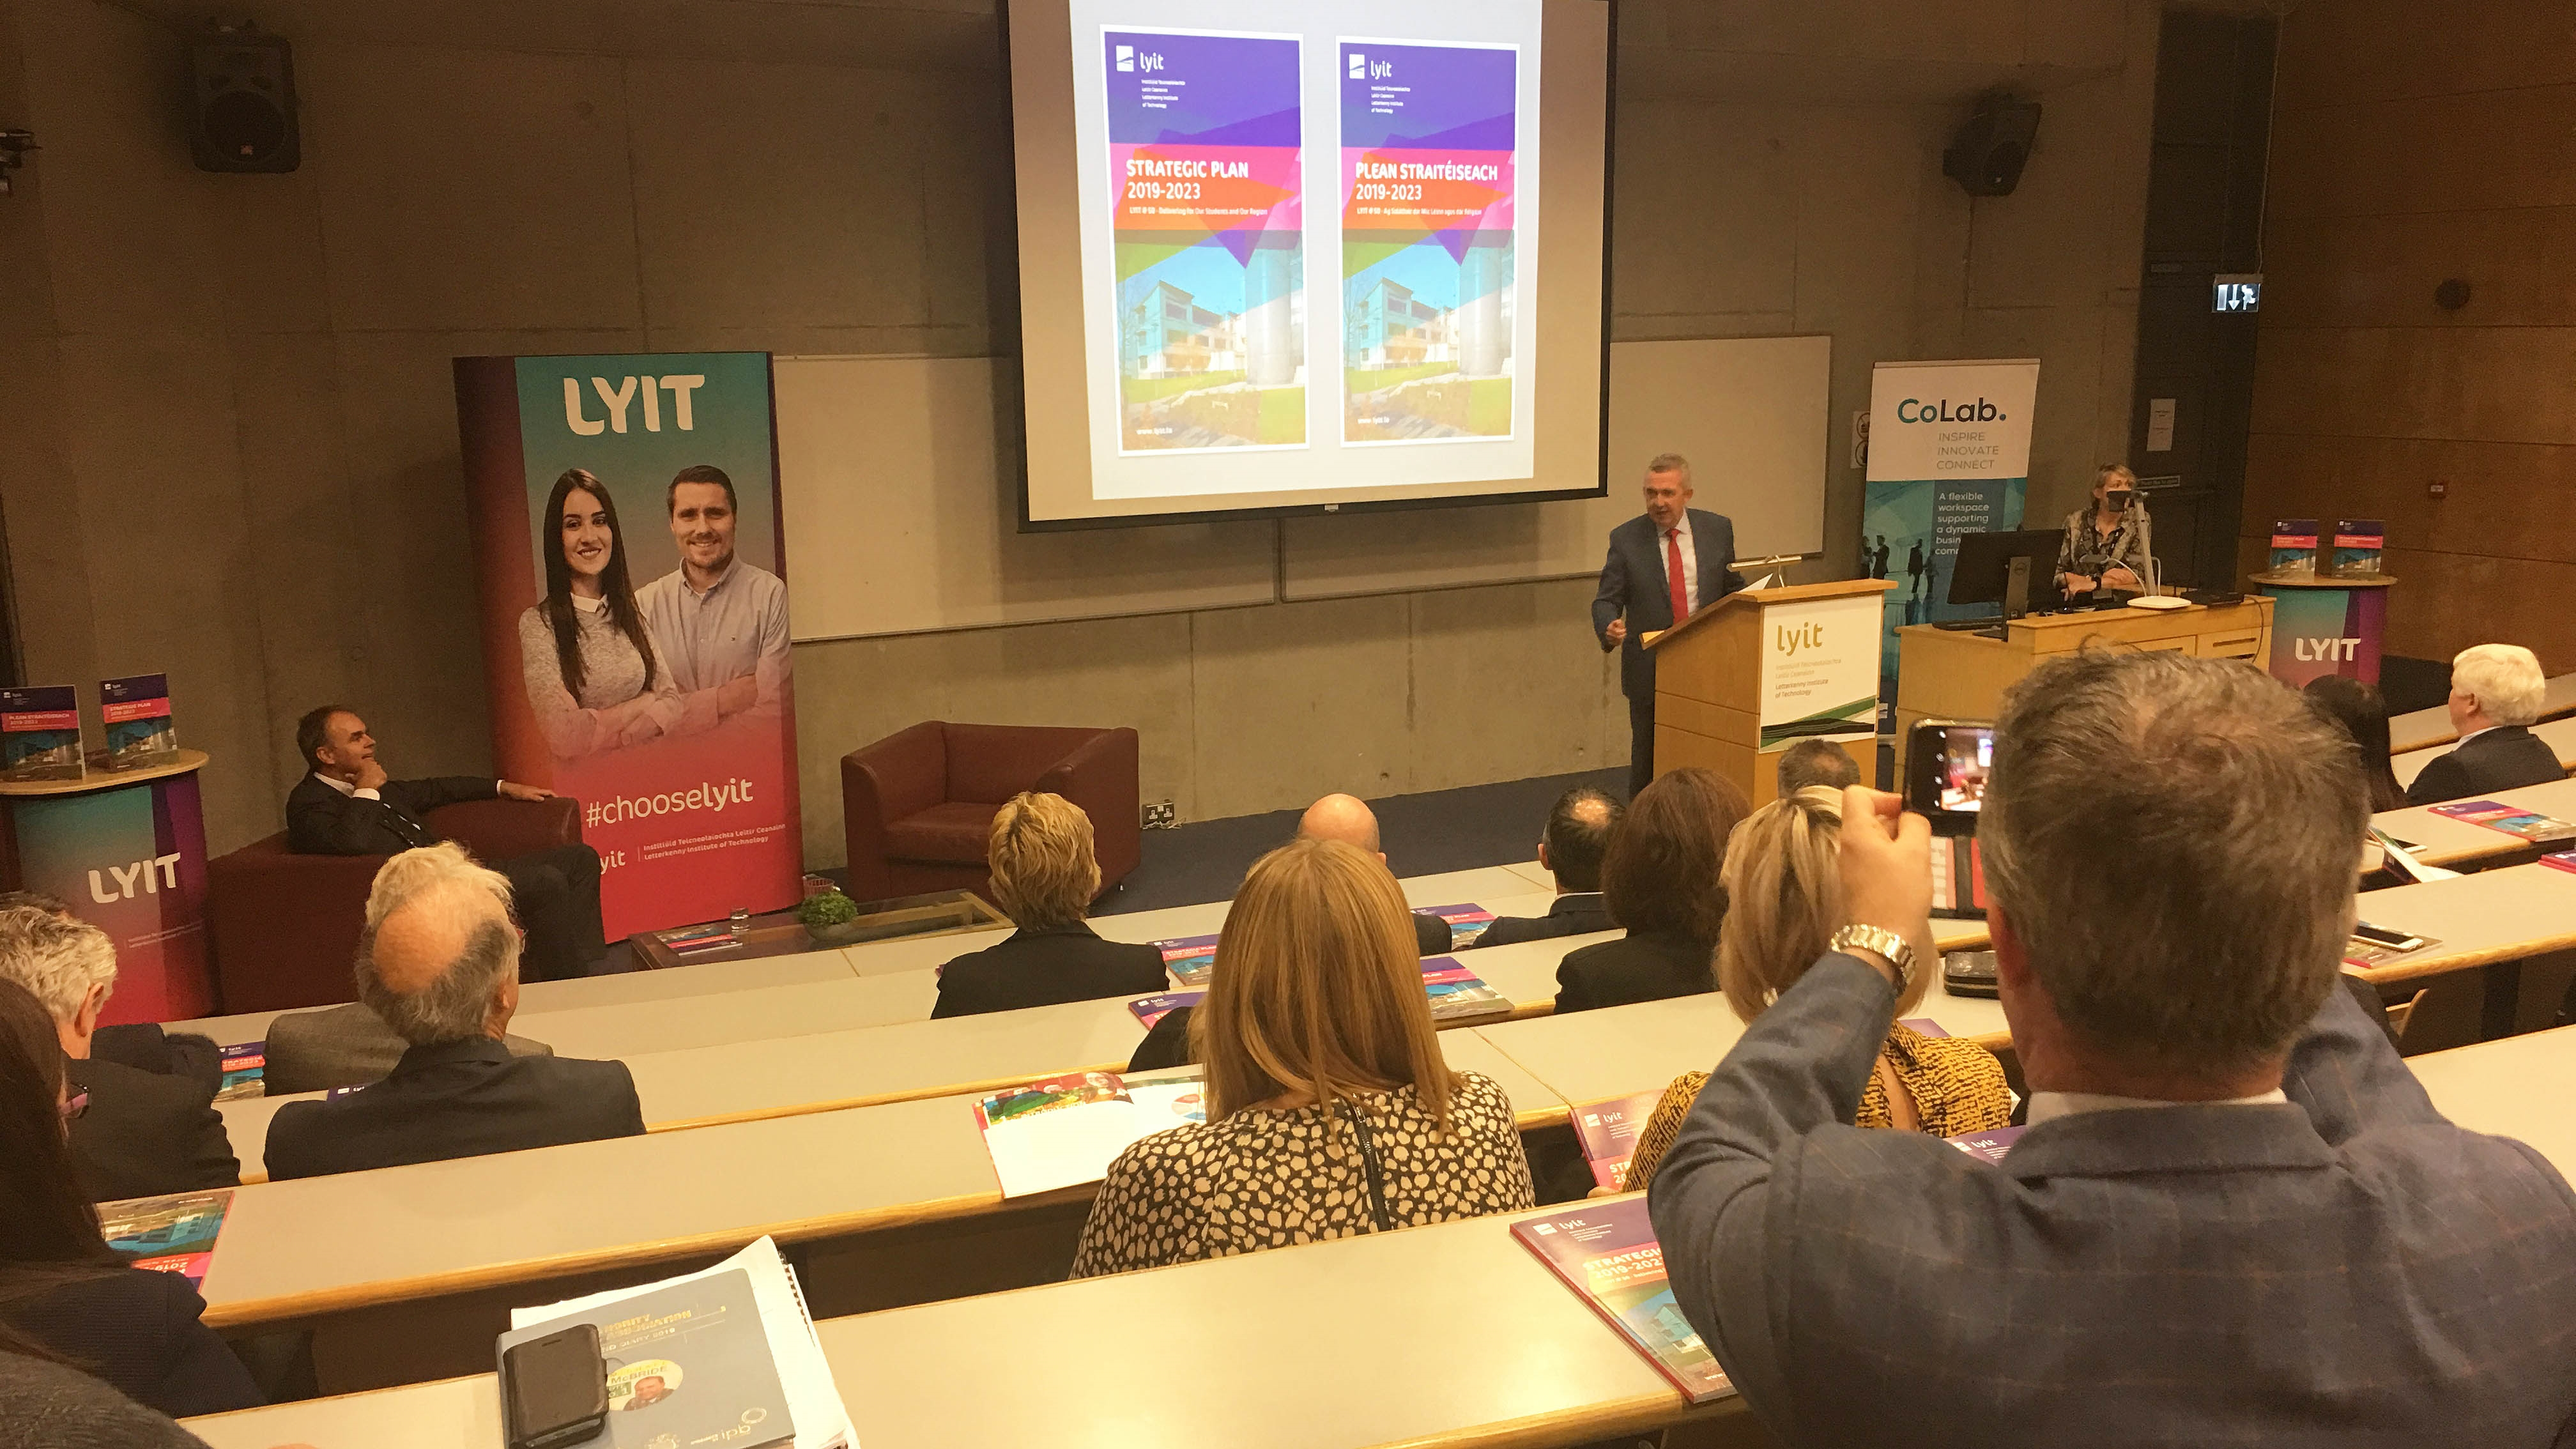 LYIT has launched its Strategic Plan